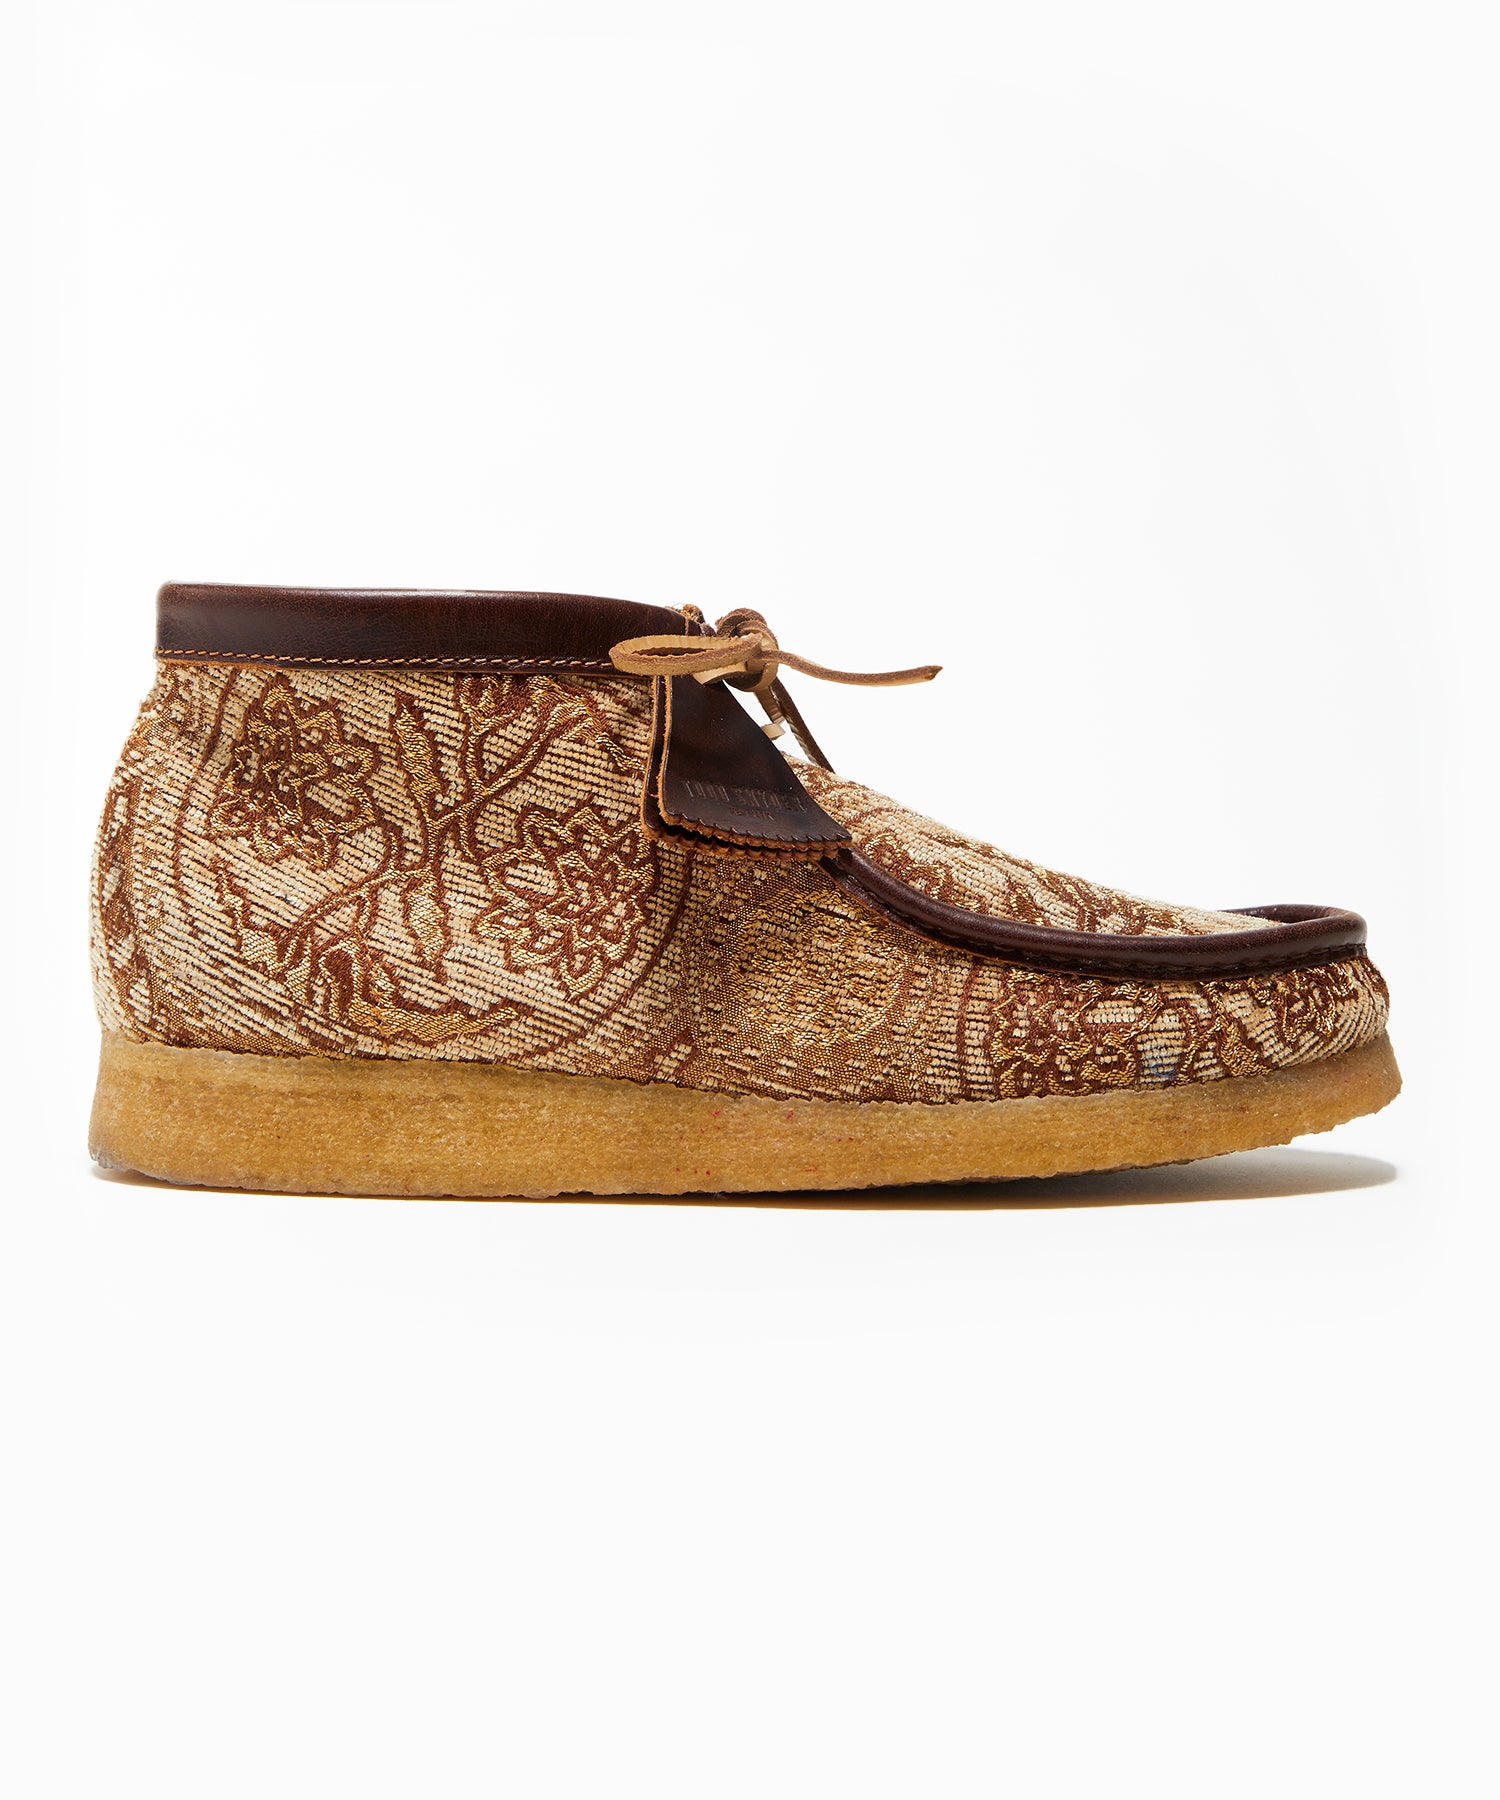 Todd Snyder x Clarks Originals Brown Paisley Wallabee Boot